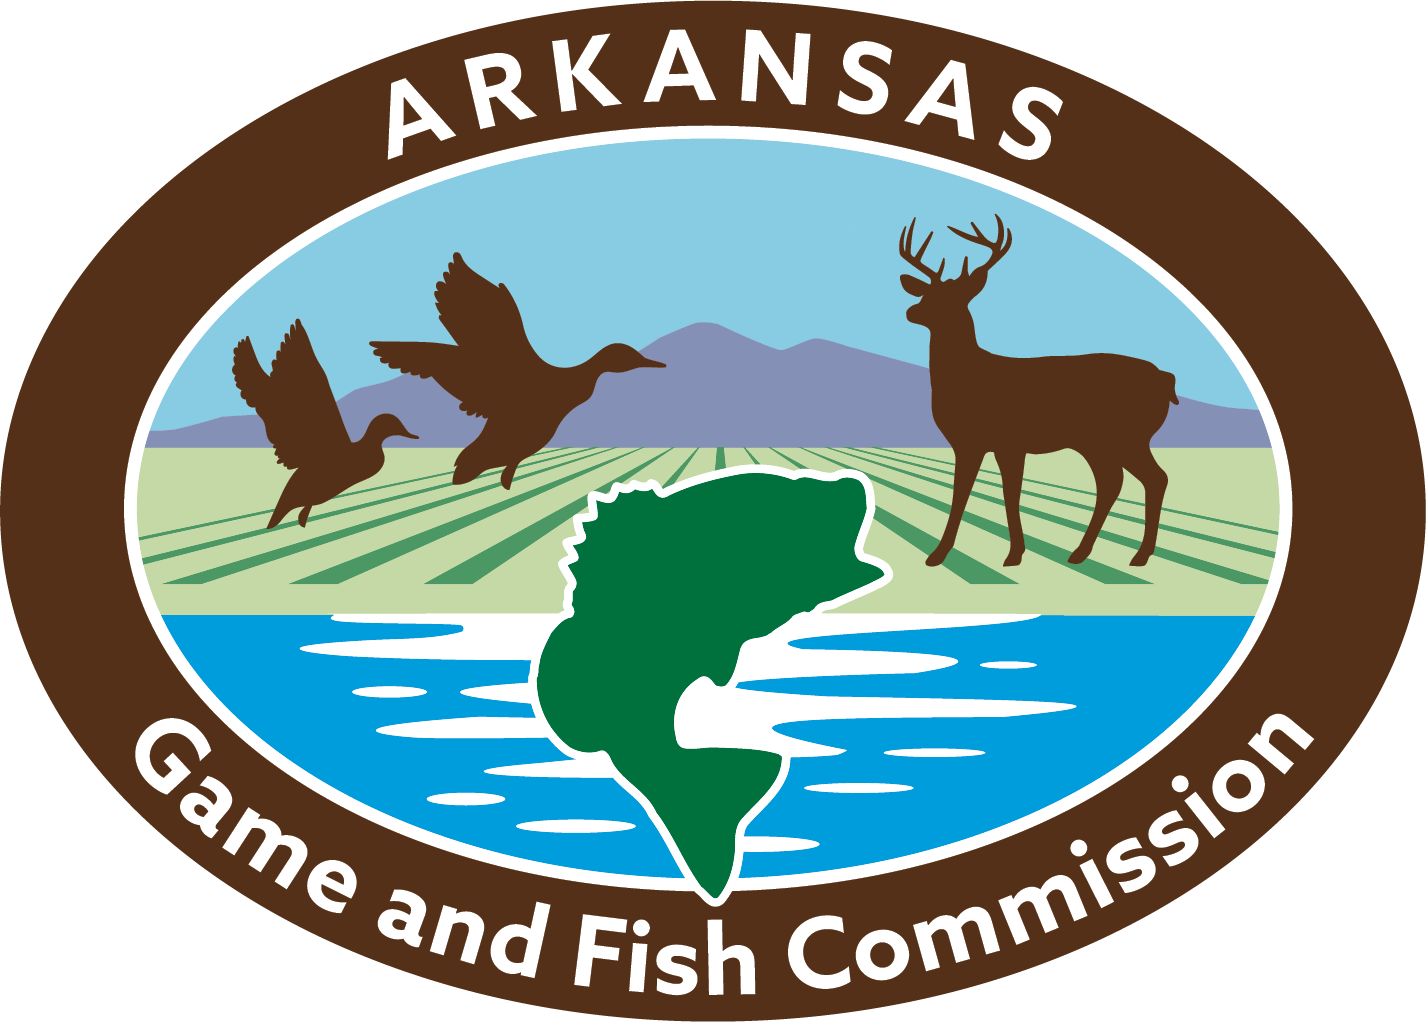 Arkansas game and fish commission for Arkansas game and fish commission